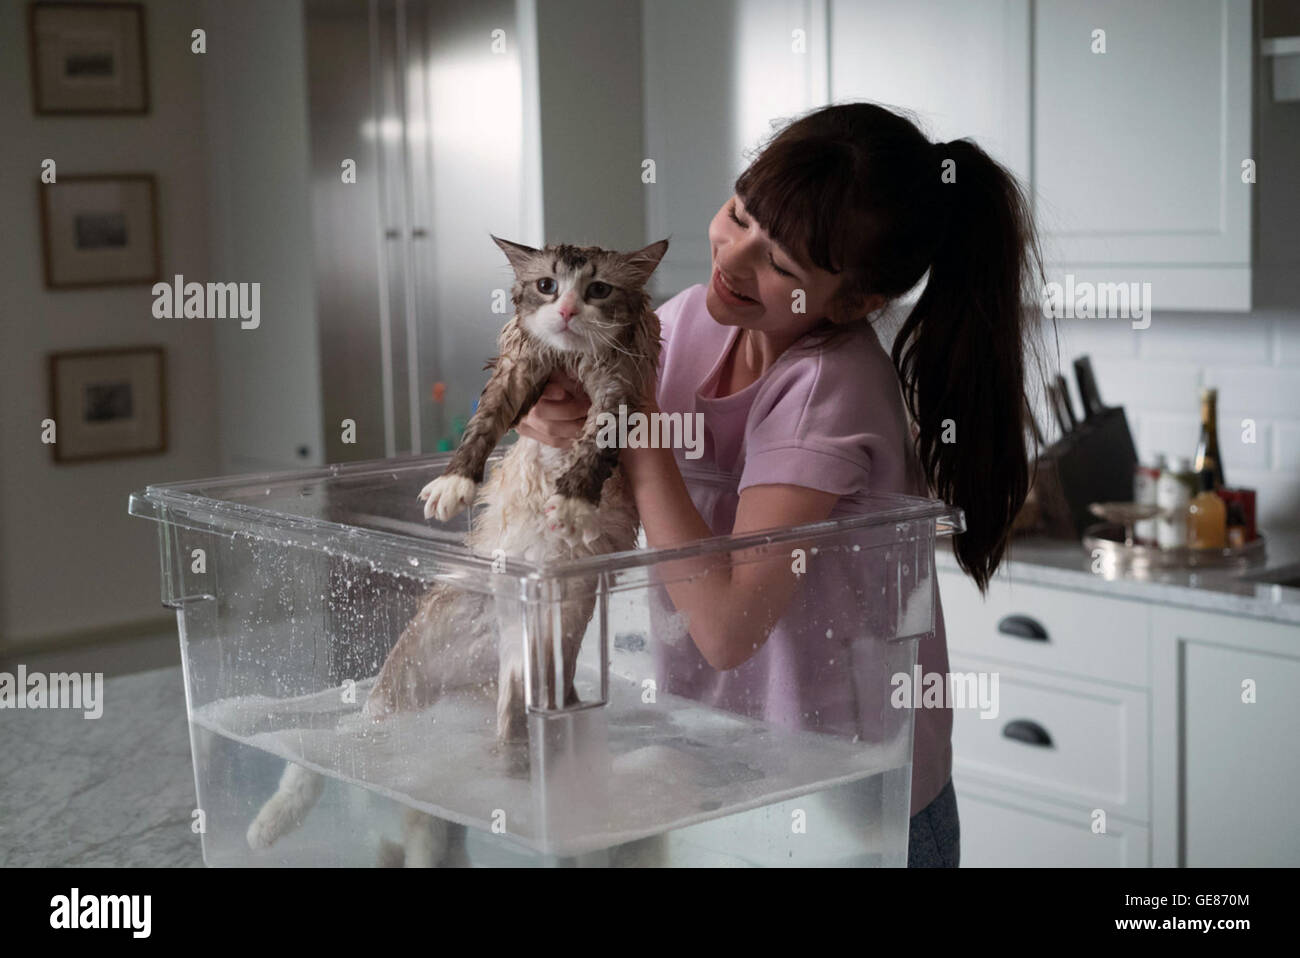 Nine Lives is an upcoming French comedy film directed by Barry Sonnenfeld and written by Dan Antoniazzi and Ben - Stock Image